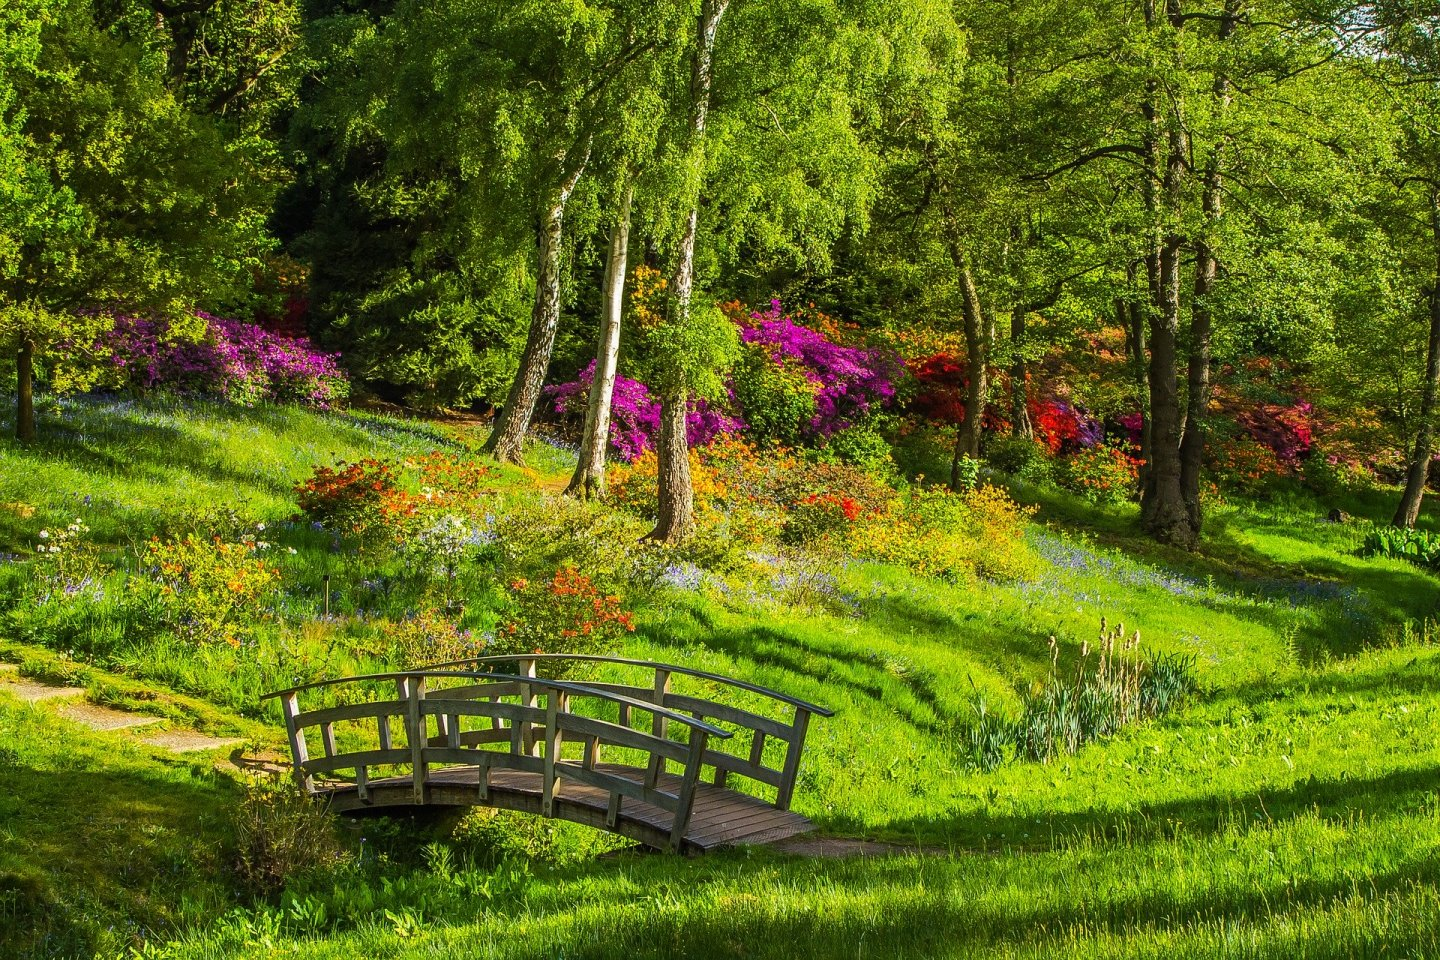 A beautifully rich photo of a park, with lots of lush green grass and tall trees, with a little colour from some pink plants to the back. There's a small wooden bridge to the front.